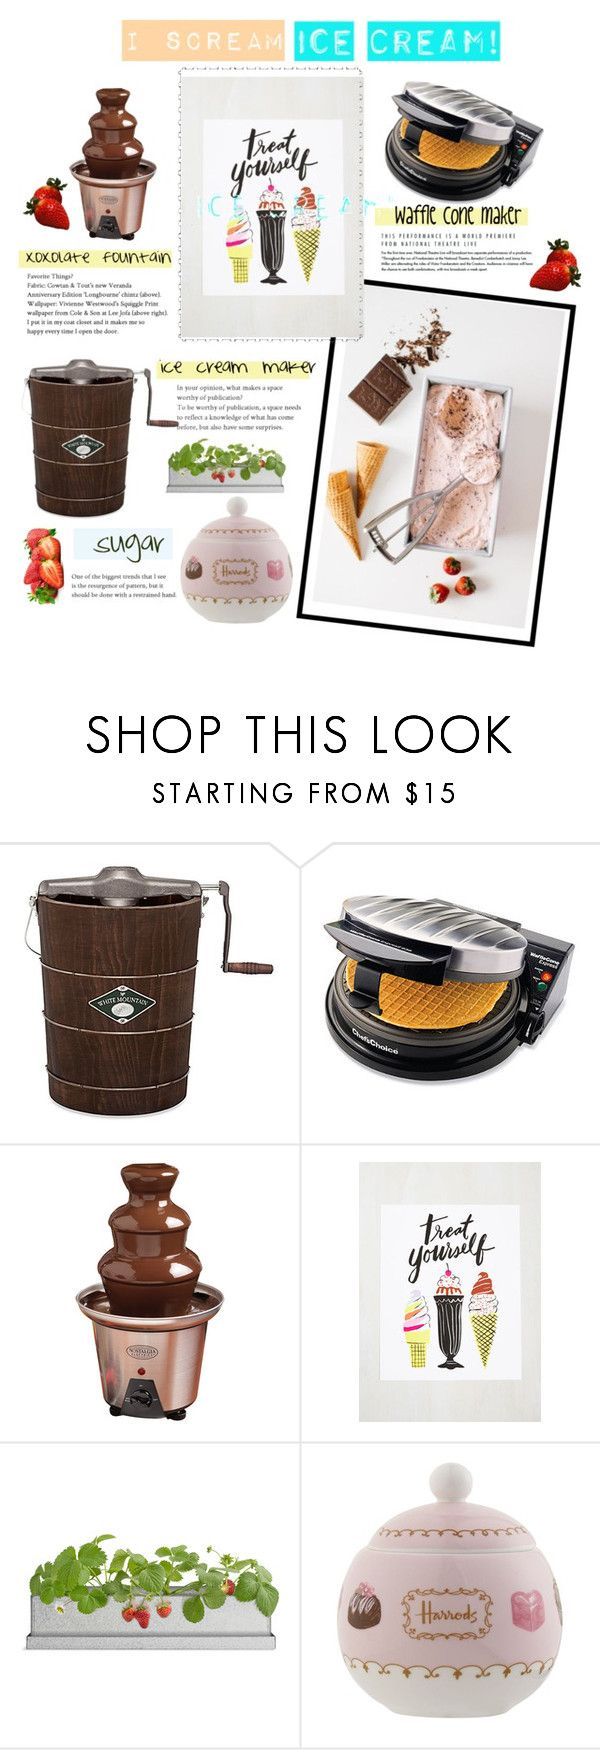 """""""#107"""" by opipolla ❤ liked on Polyvore featuring interior, interiors, interior design, home, home decor, interior decorating, Frontgate, Post-It, Nostalgia and Potting Shed Creations"""